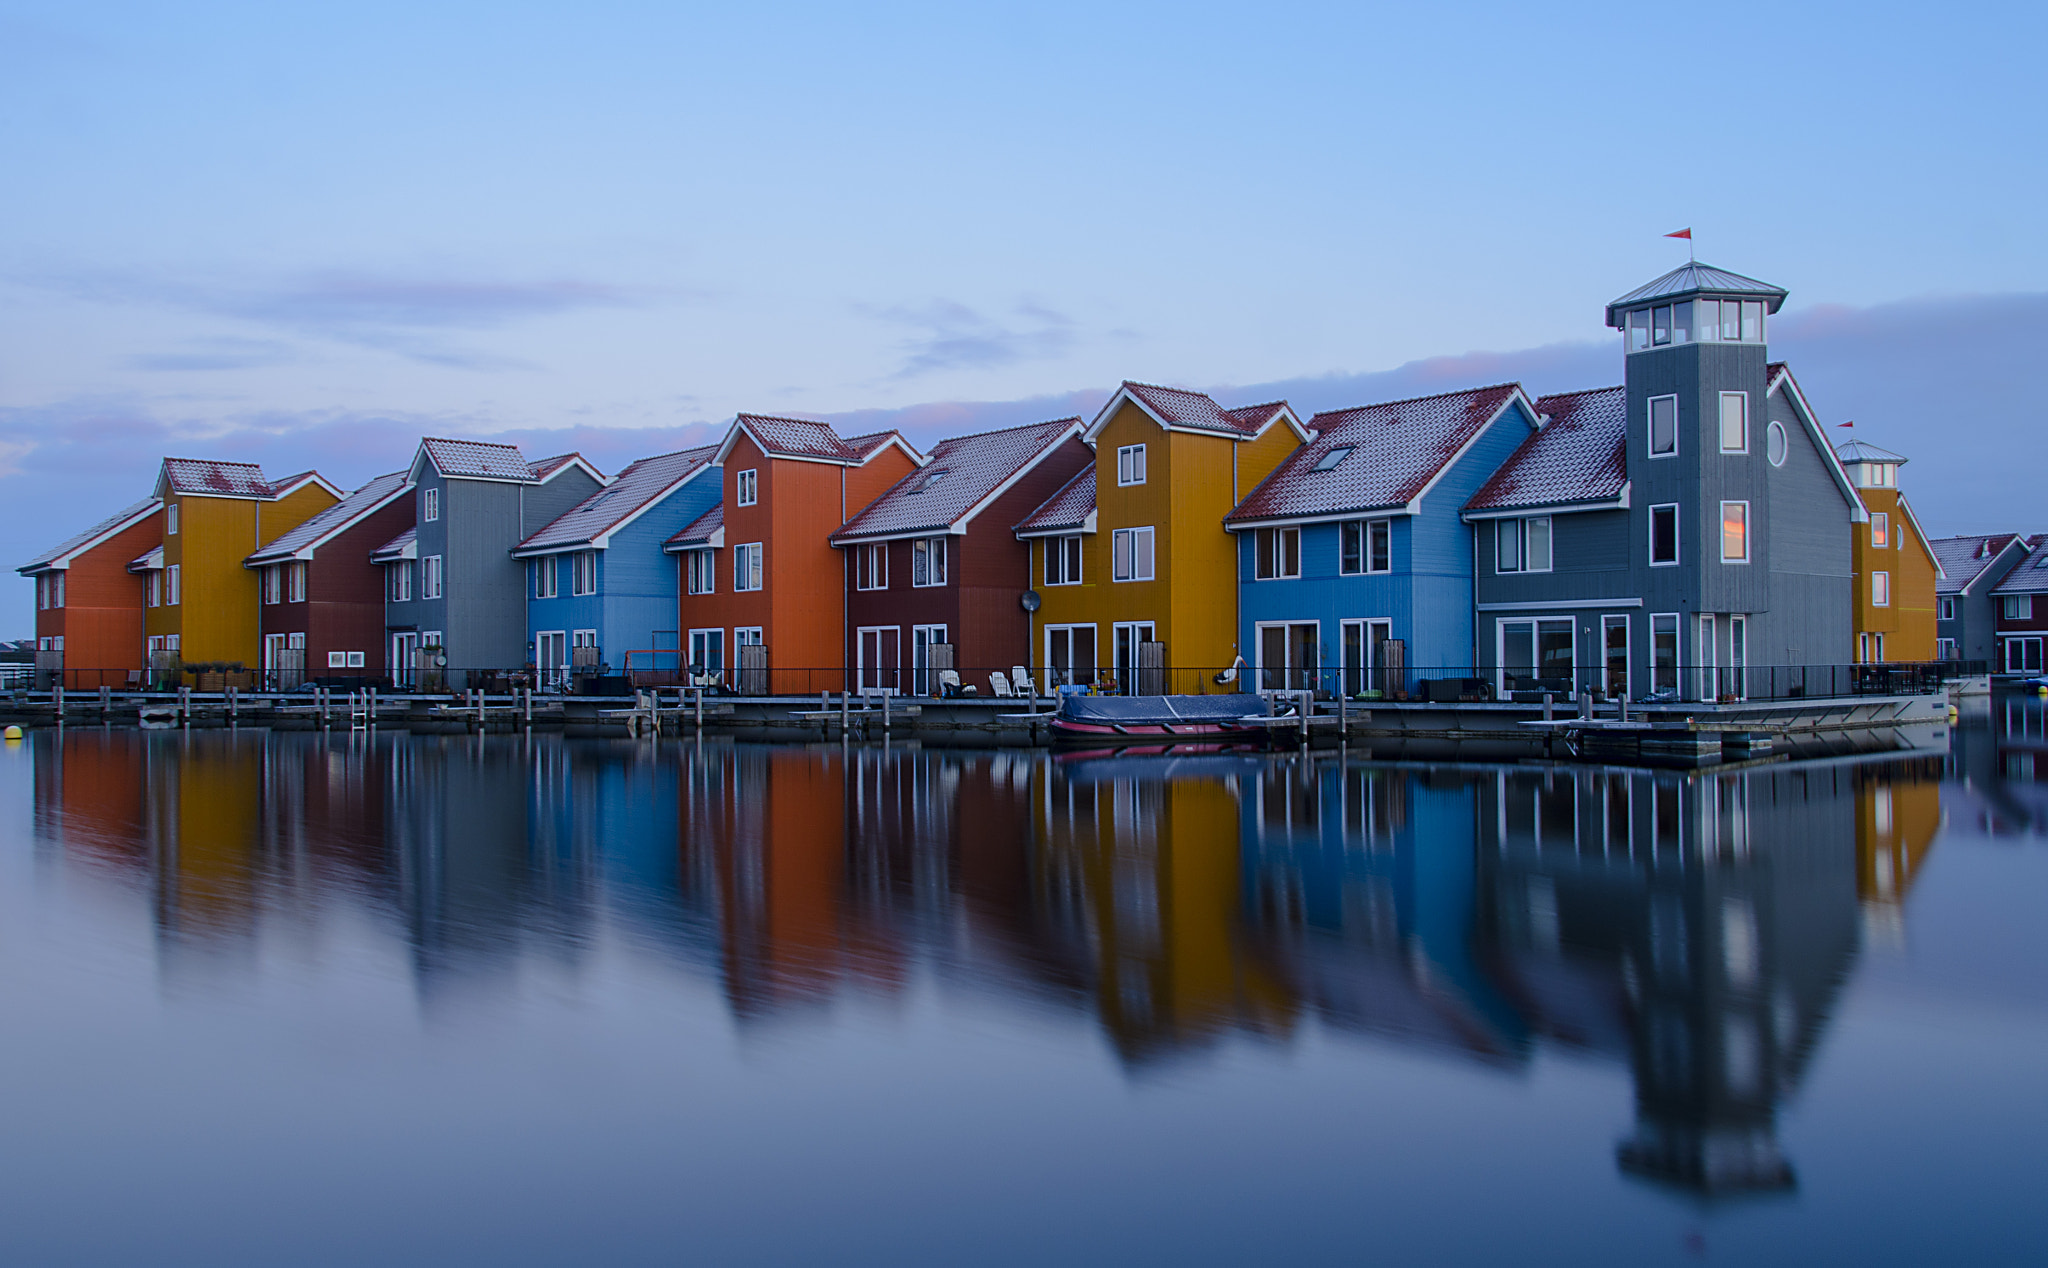 Photograph Colorful houses by Martijn Barendregt on 500px